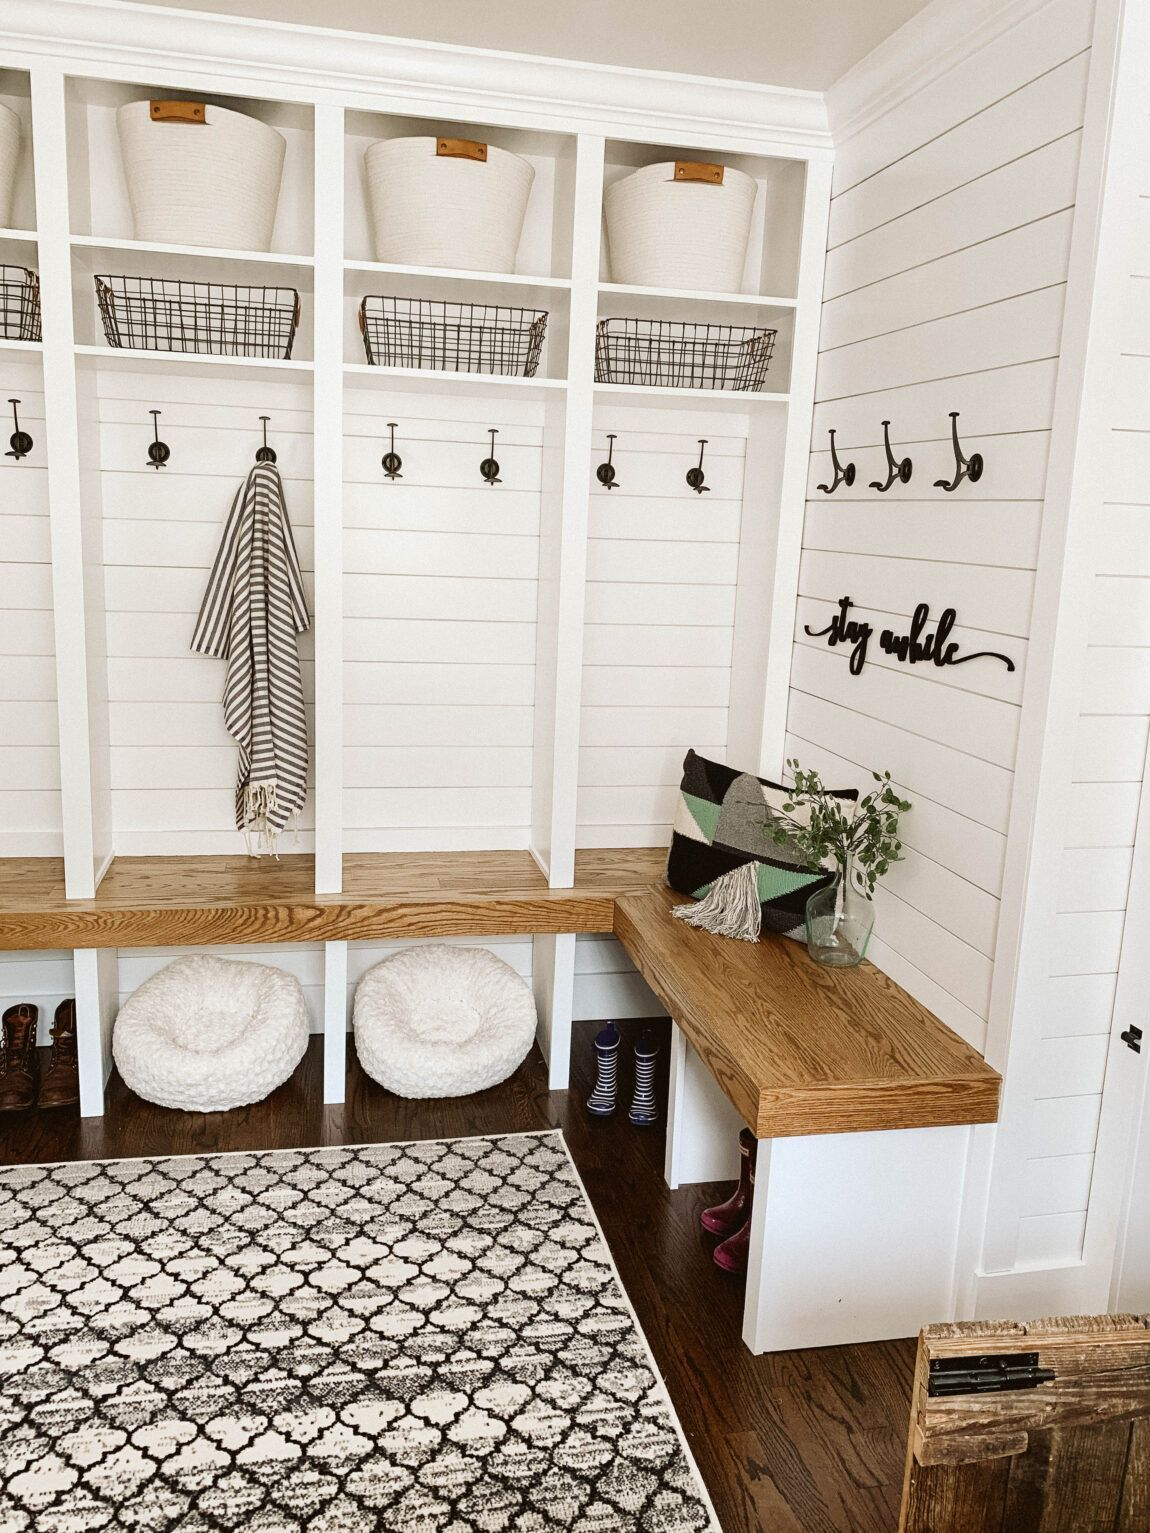 Modern Farmhouse Renovation Clark Aldine Mudroom Laundry Room Diy Mudroom Bench Mudroom Decor